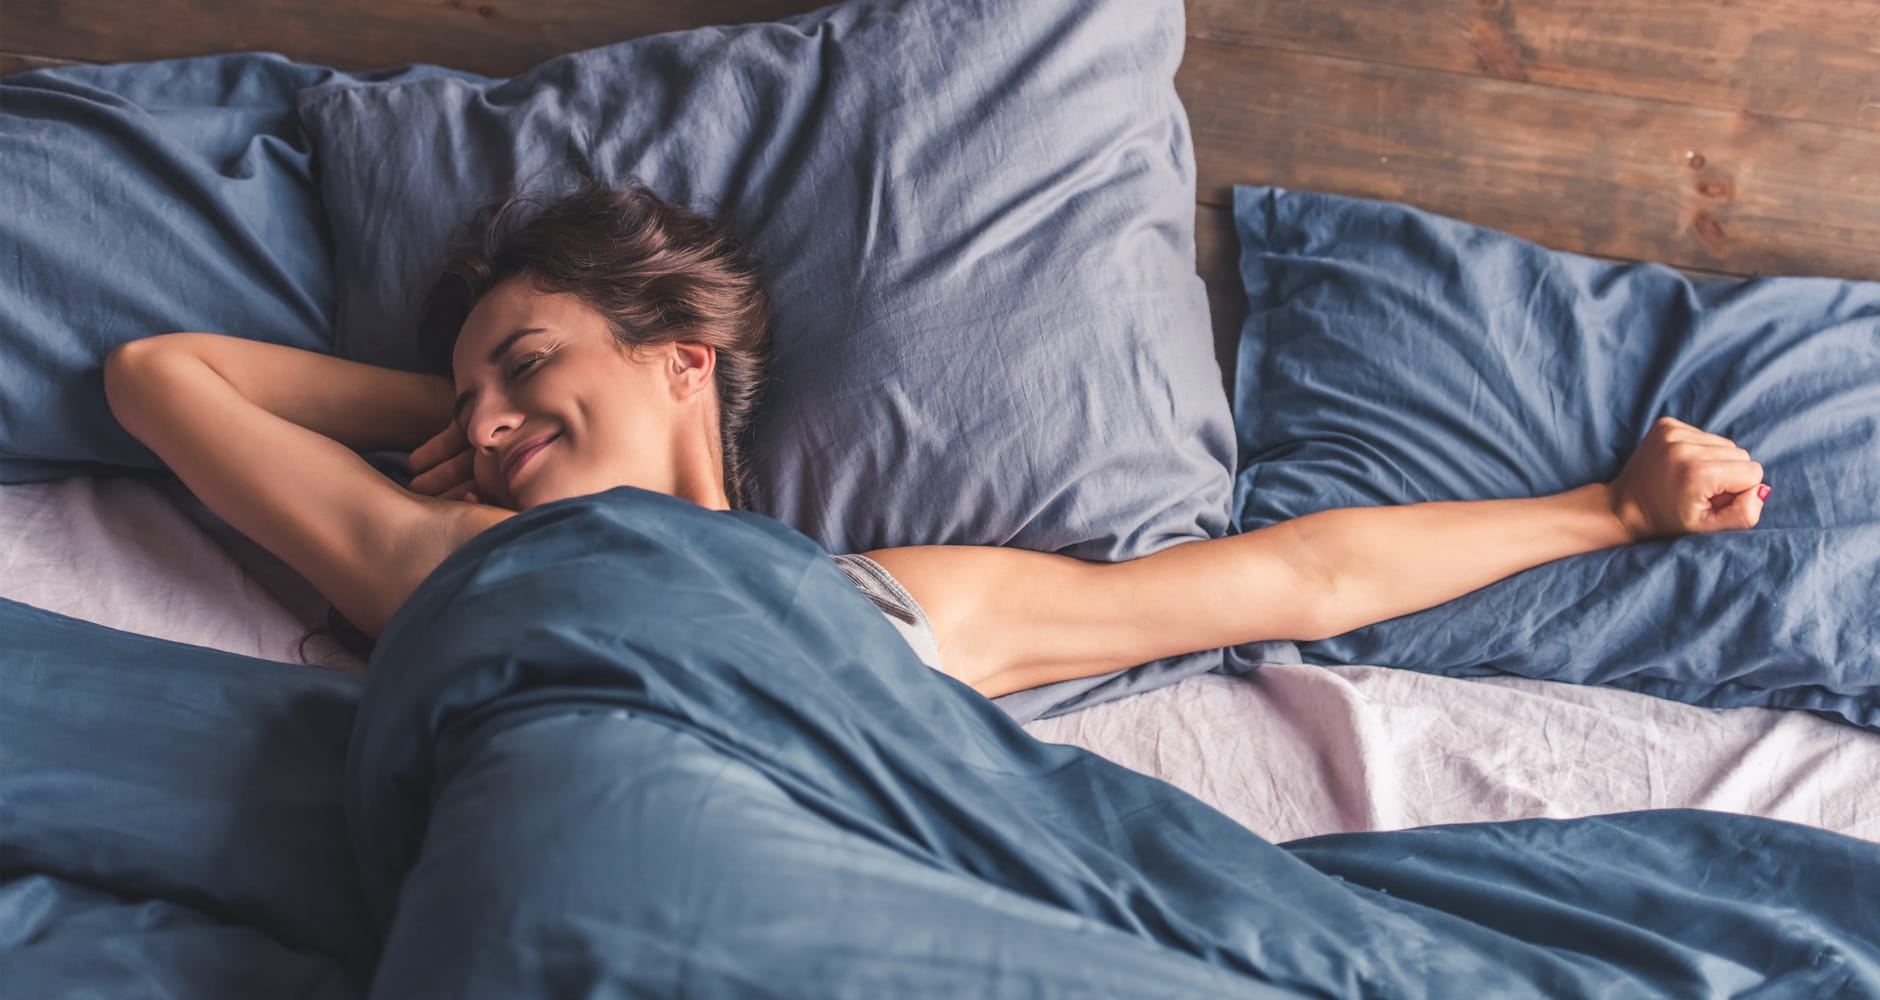 mom sleeping in bed getting some alone time for Mother's Day